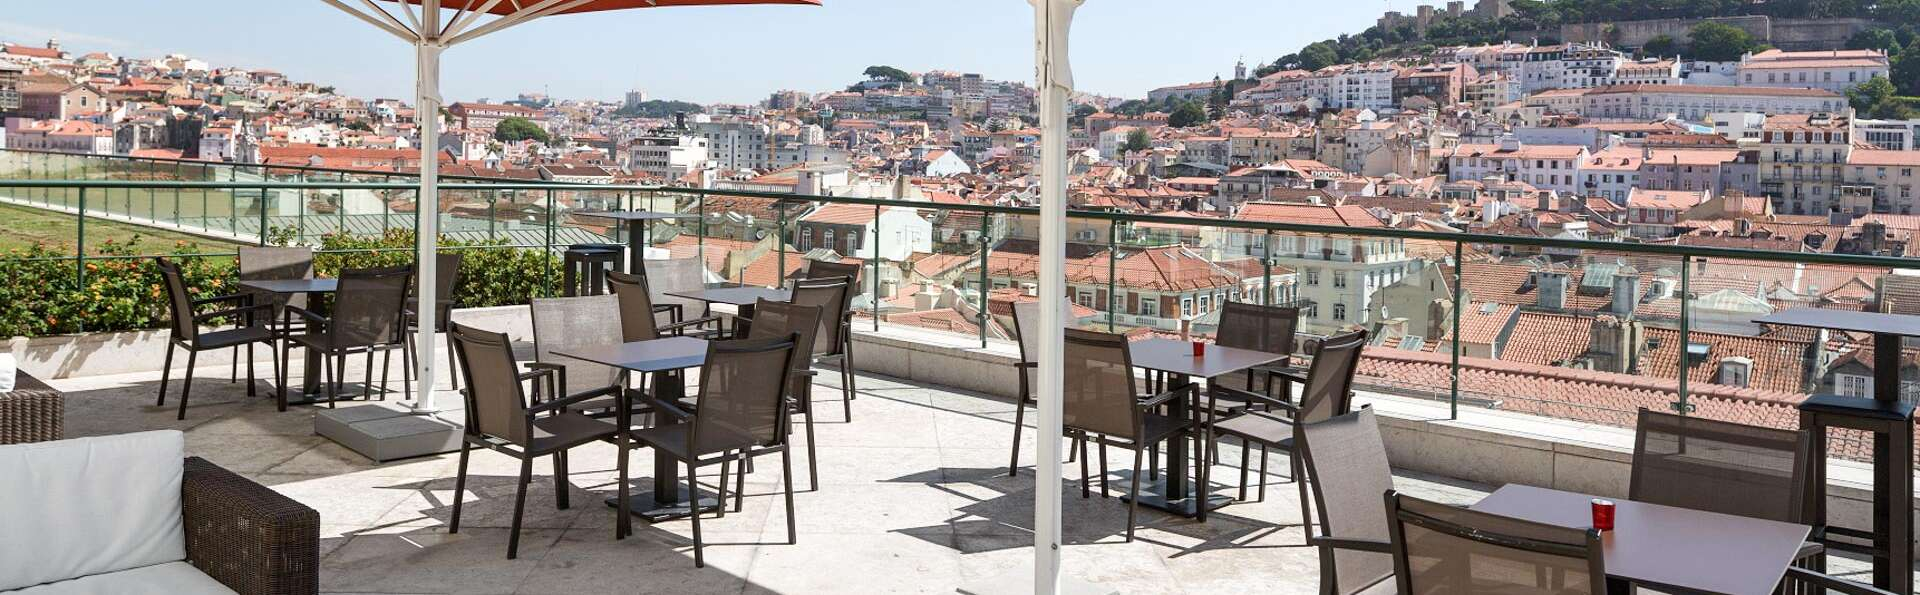 Hotel do Chiado - EDIT_TERRACE_03.jpg